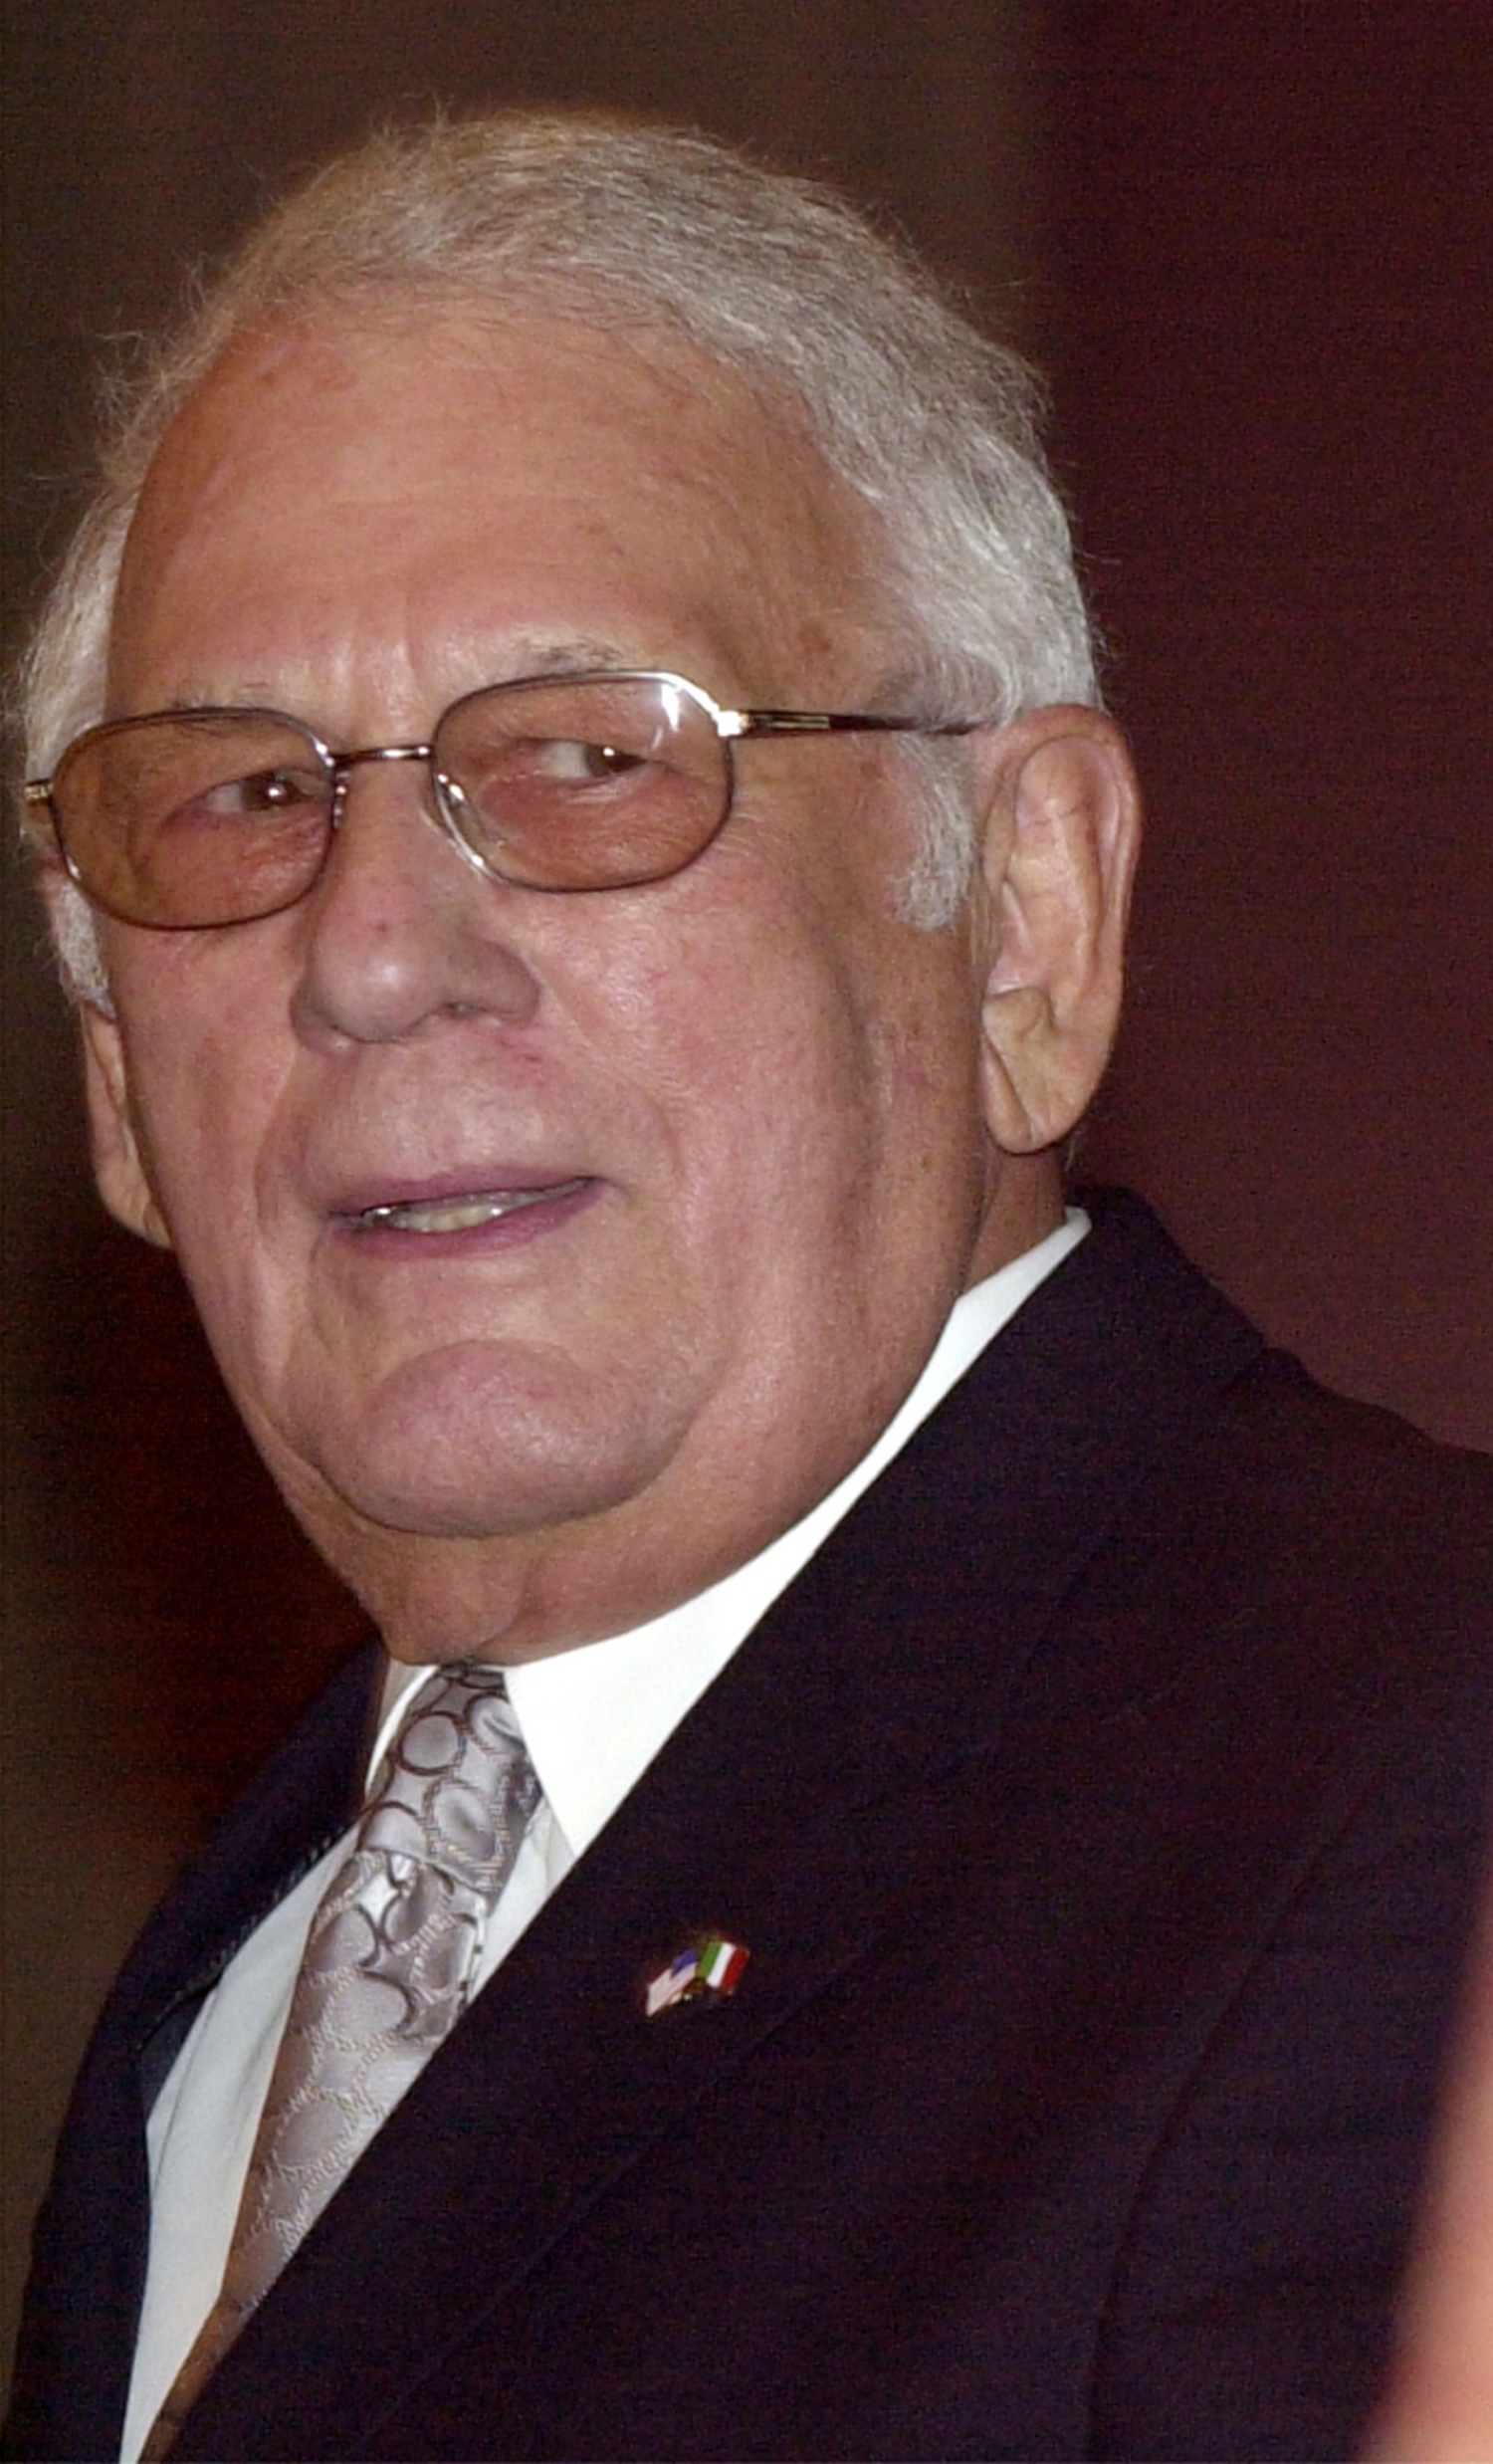 Former state Rep. Ralph Capparelli, D-Chicago (above), pocketed more money from his campaign account than anybody else — $583,357 between 2006 and 2010 — in a legalized money-grab Illinois legislators approved.